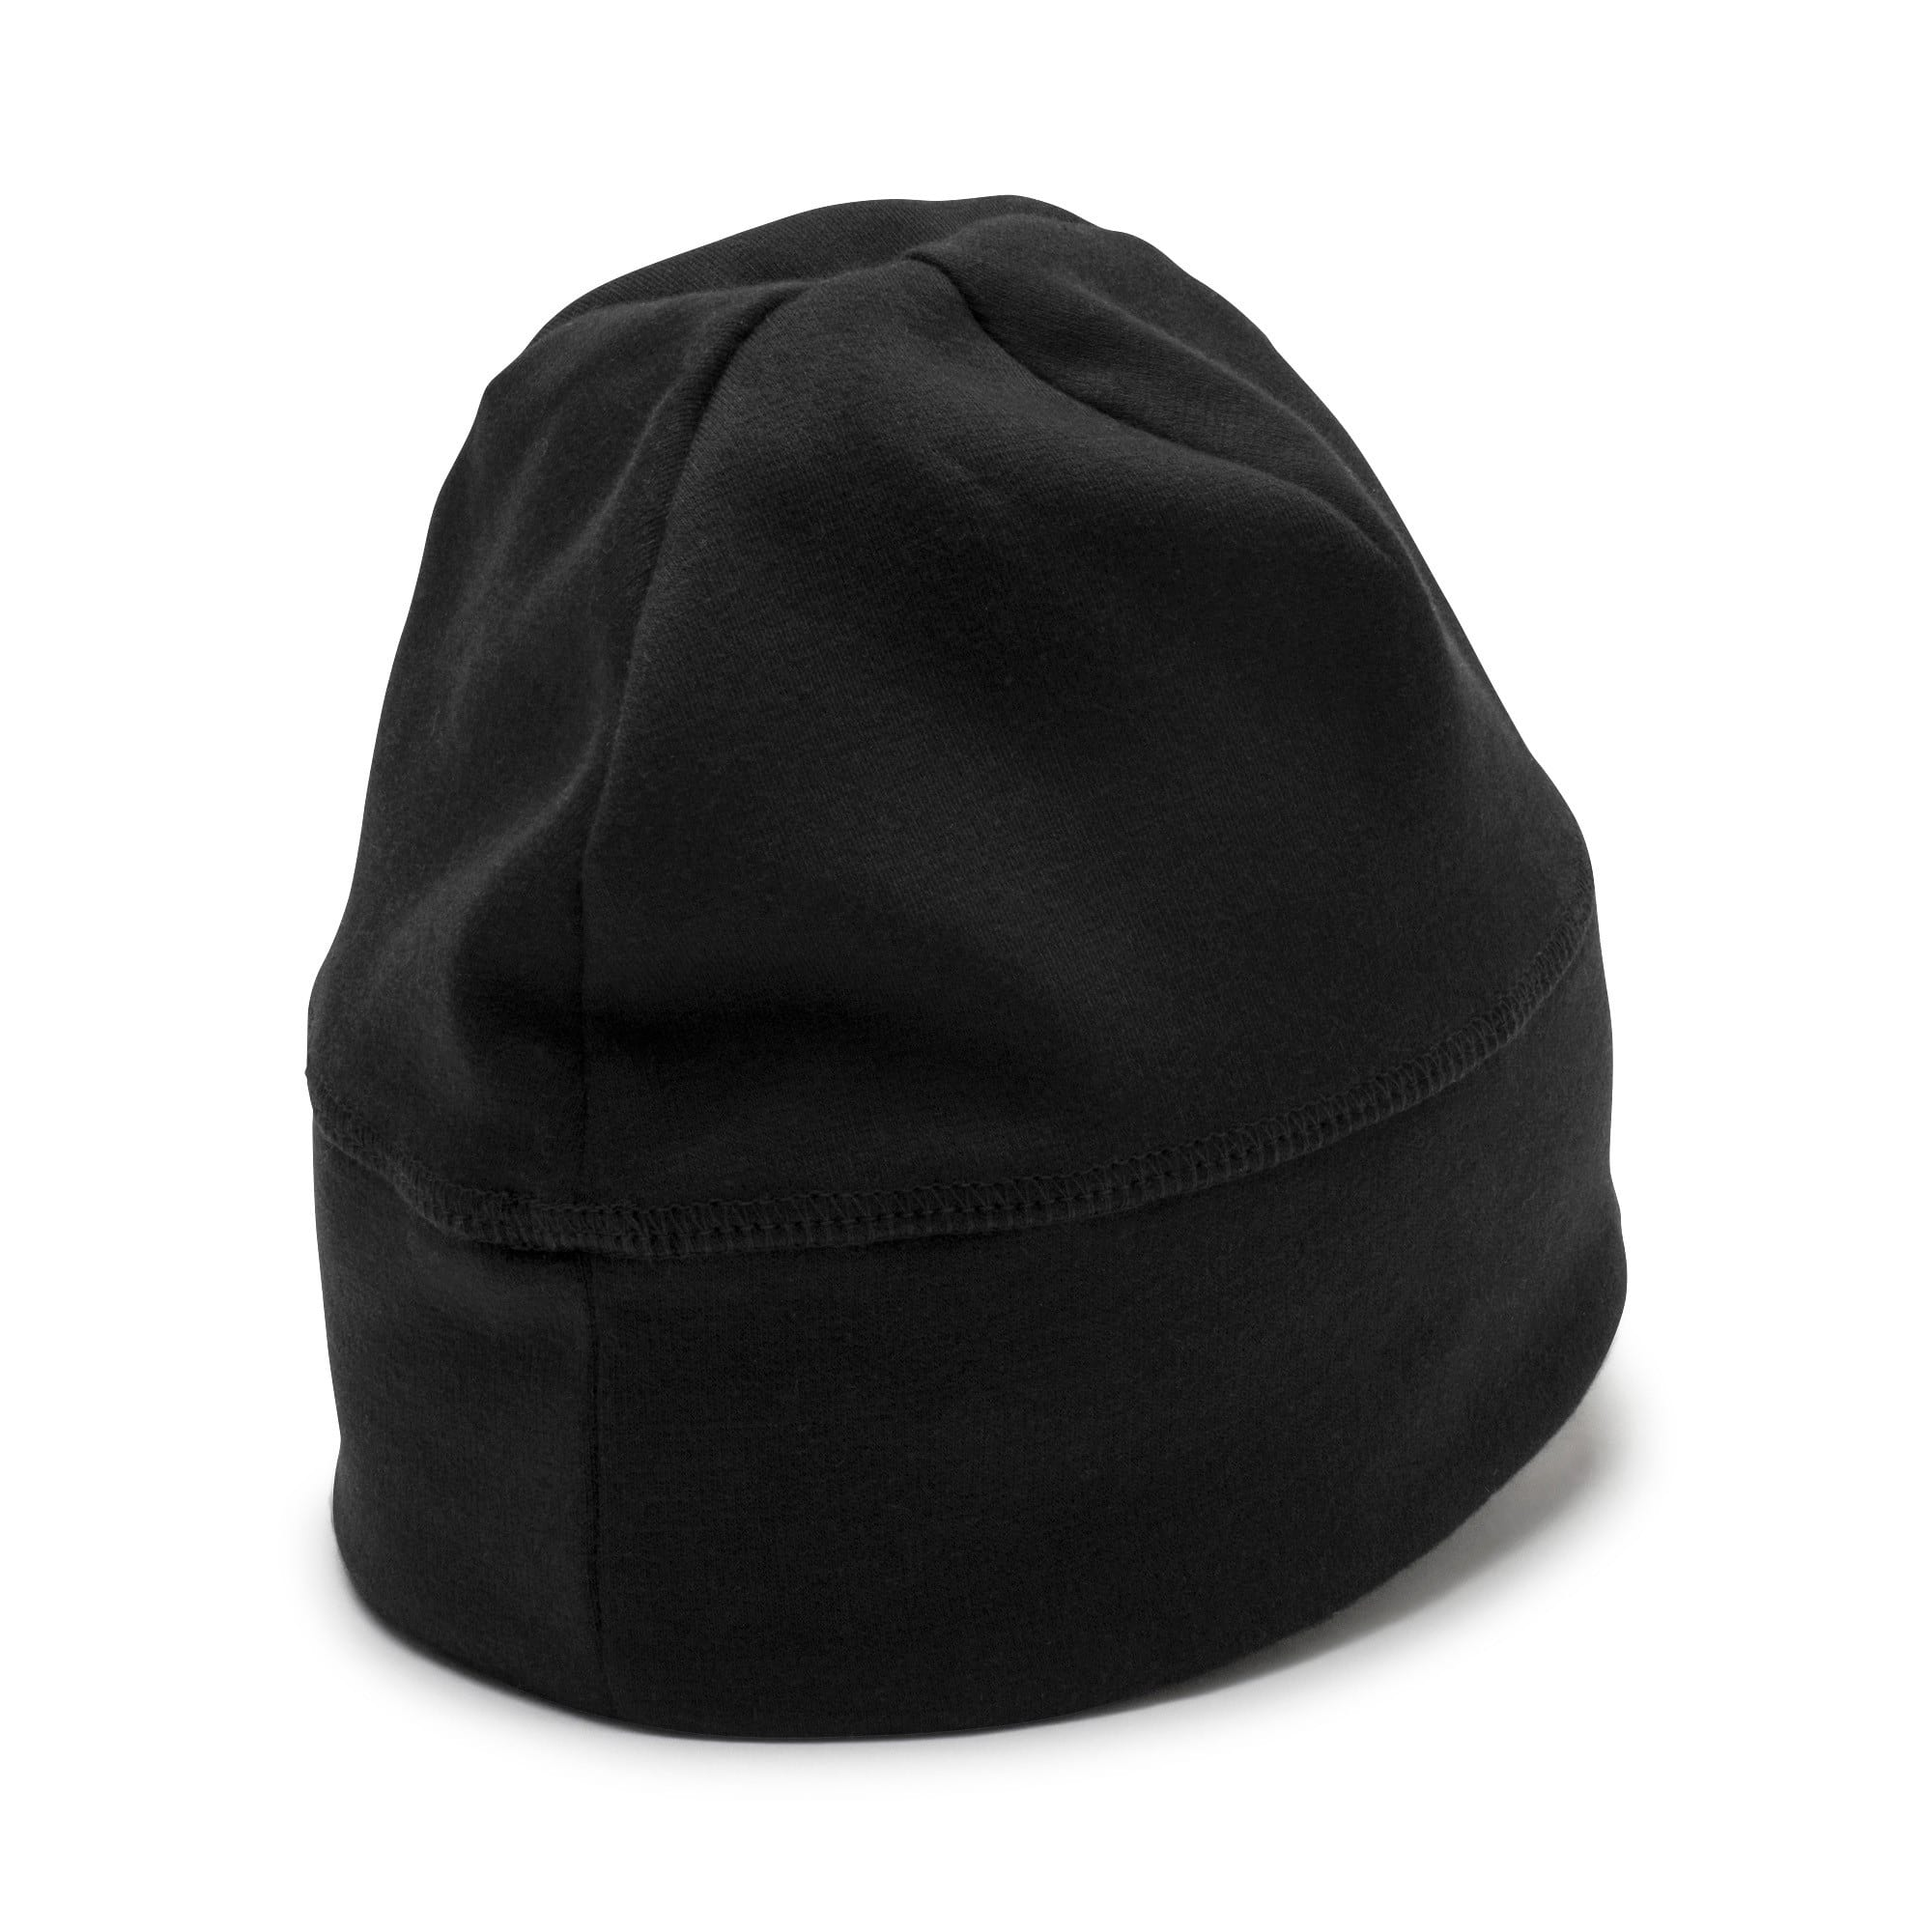 Thumbnail 2 of Reflective Running beanie, Puma Black, medium